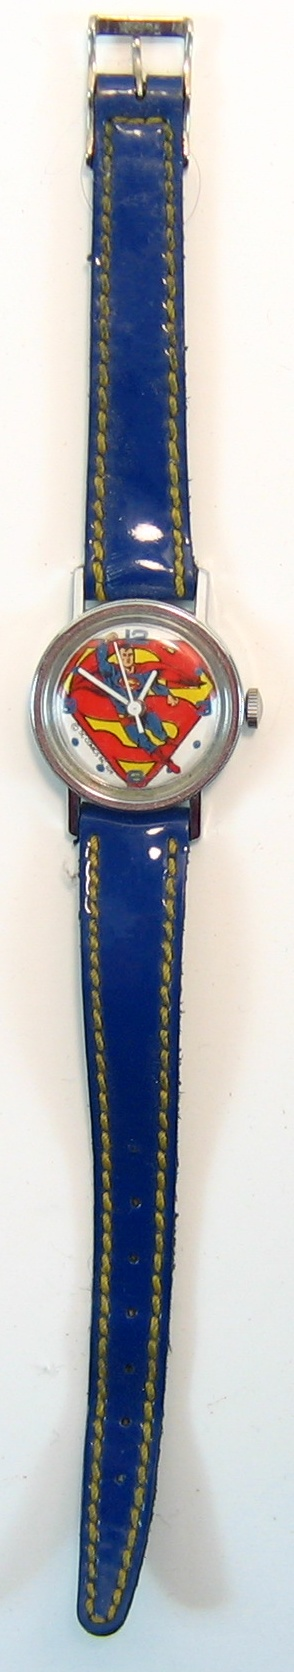 superman_70swatch2.jpg